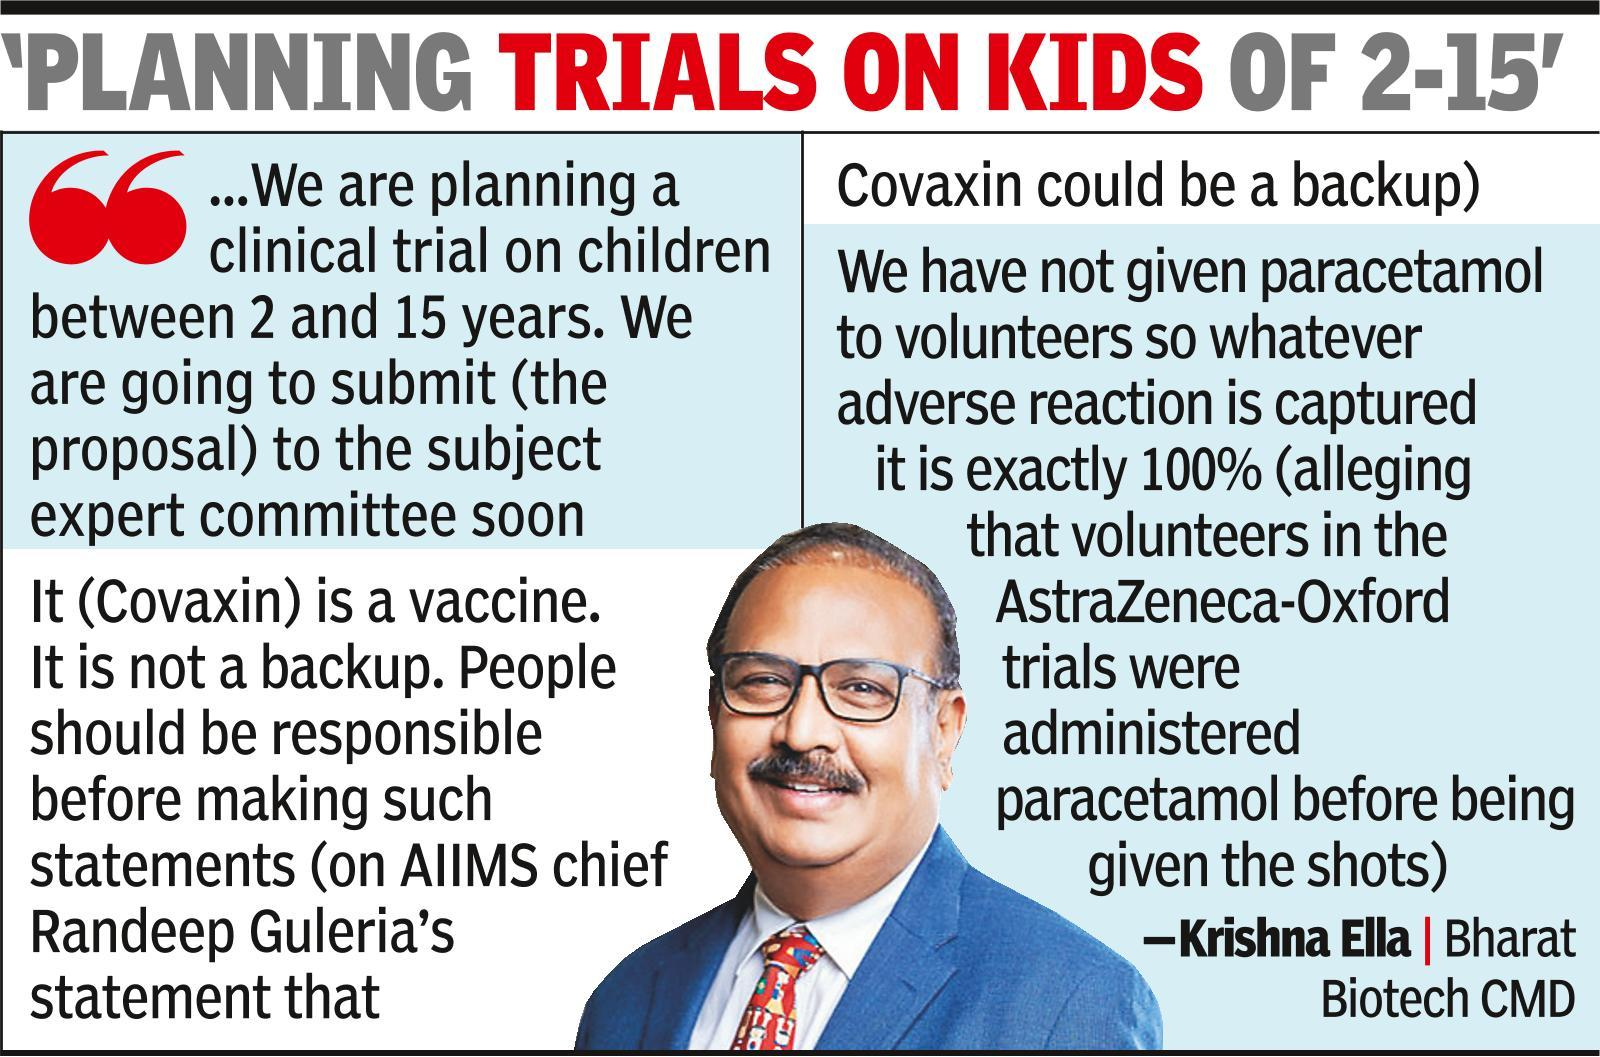 Vaccine war: Bharat Biotech chief lashes out at Serum